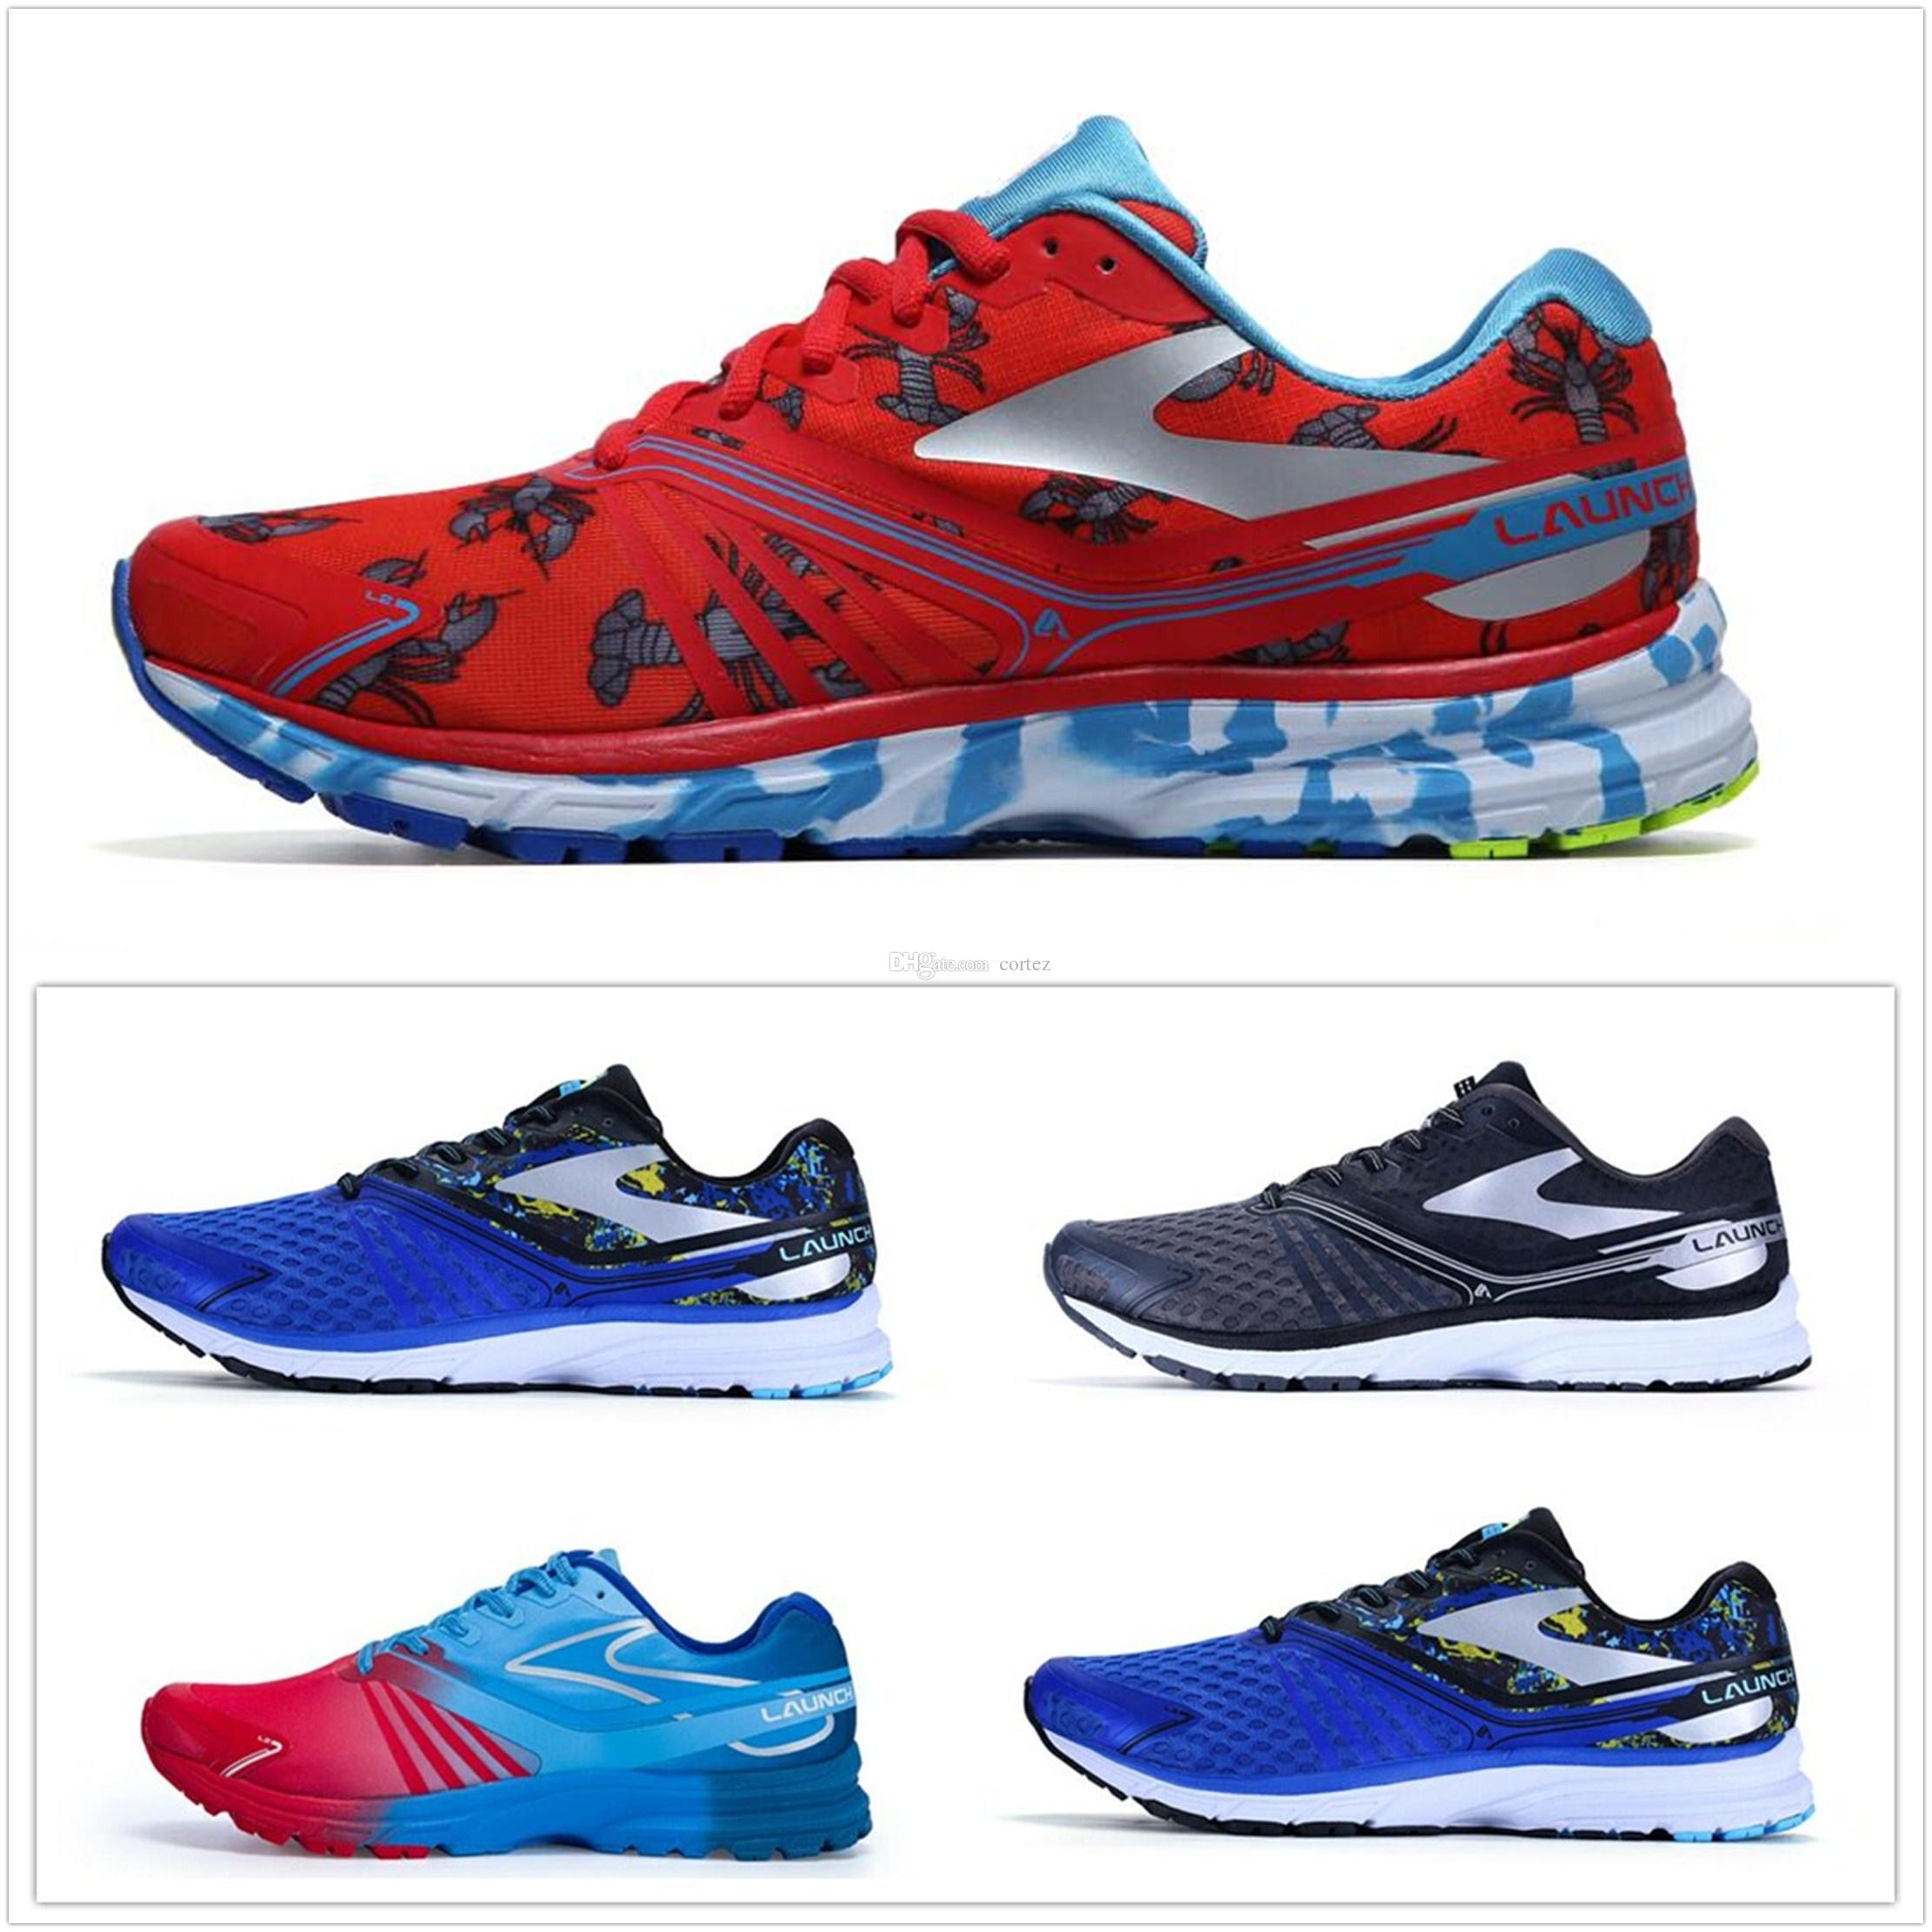 BROOKS LAUNCH 2 MULTICOLORED WOMEN'S RUNNING TRAINNING SHOES 100% AUTHENTIC